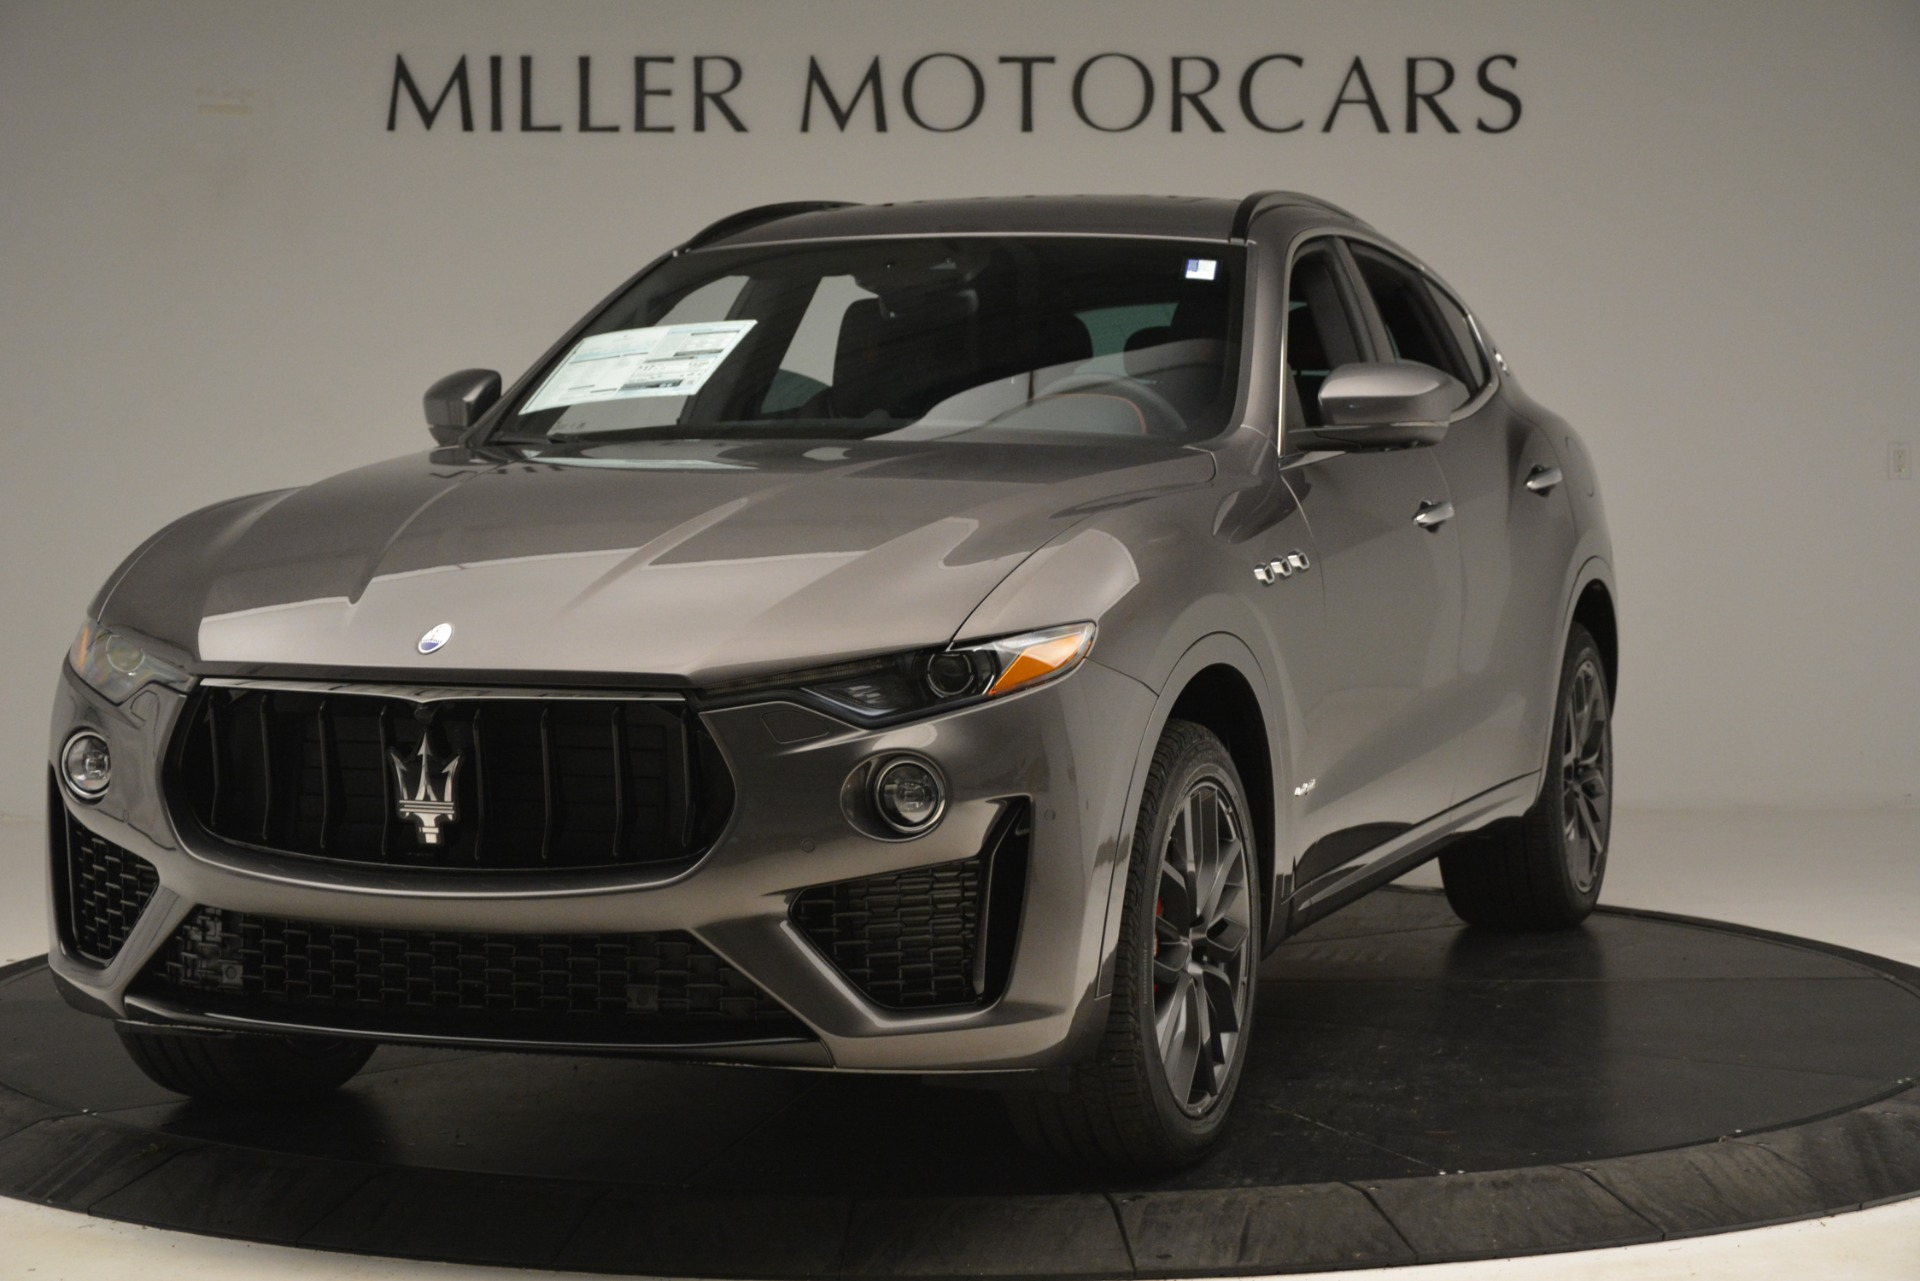 New 2019 Maserati Levante S Q4 GranSport for sale $103,440 at Bentley Greenwich in Greenwich CT 06830 1